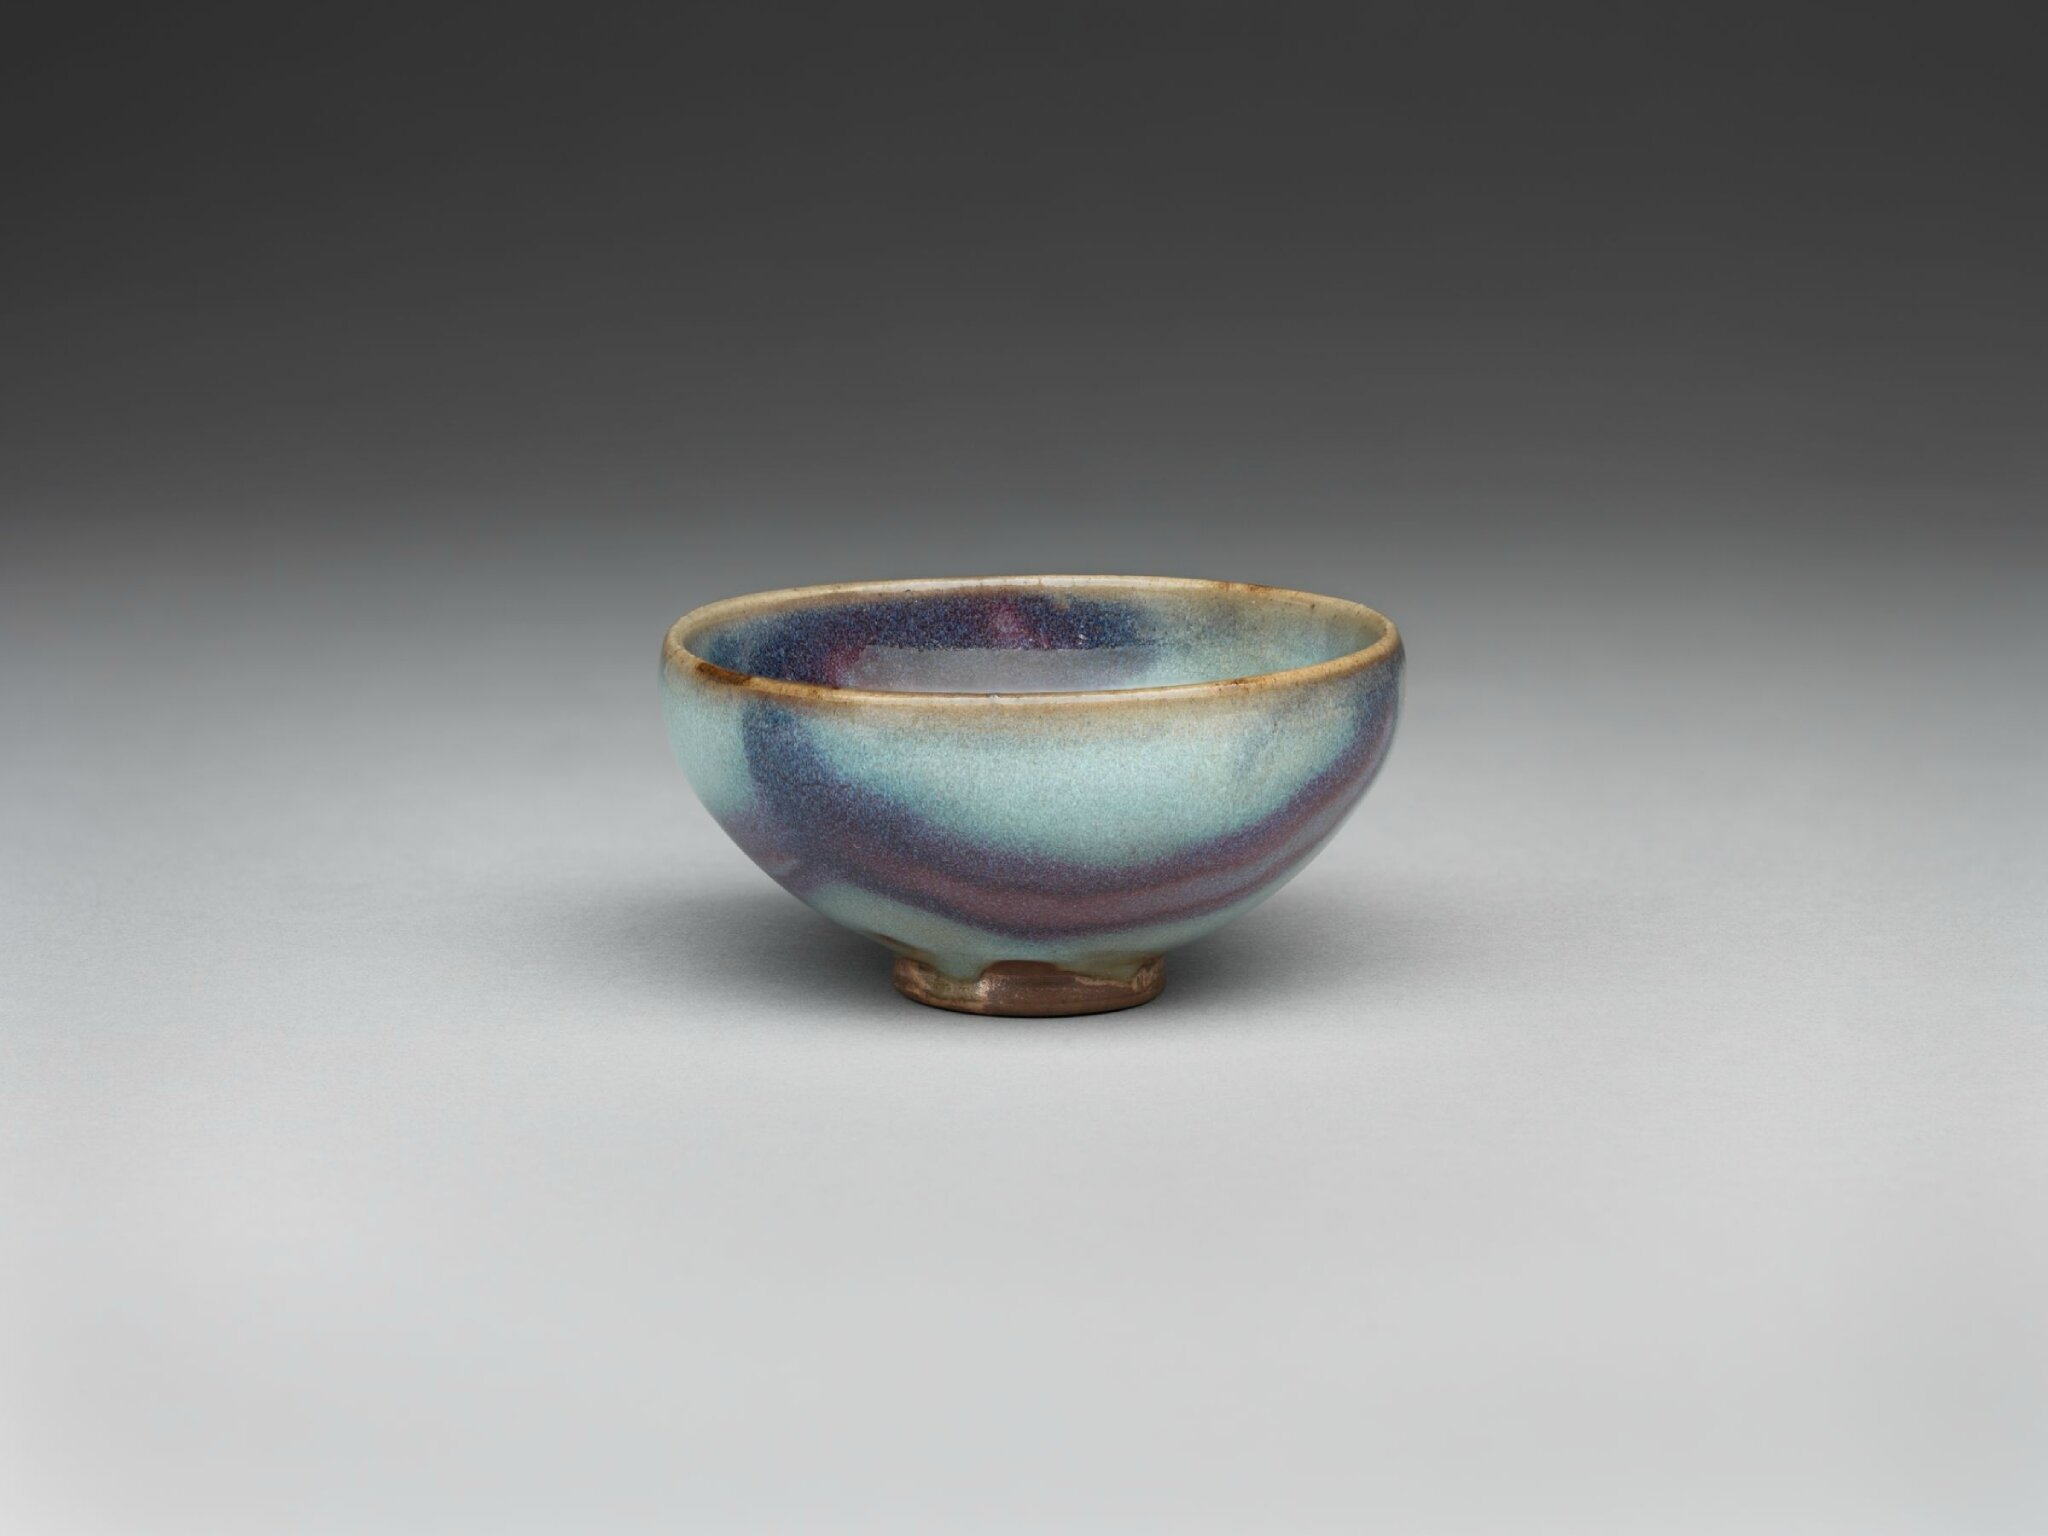 Small Circular Wine Bowl with Purple Splashes, Ming dynasty, 1368-1644, probably 15th century, 1942